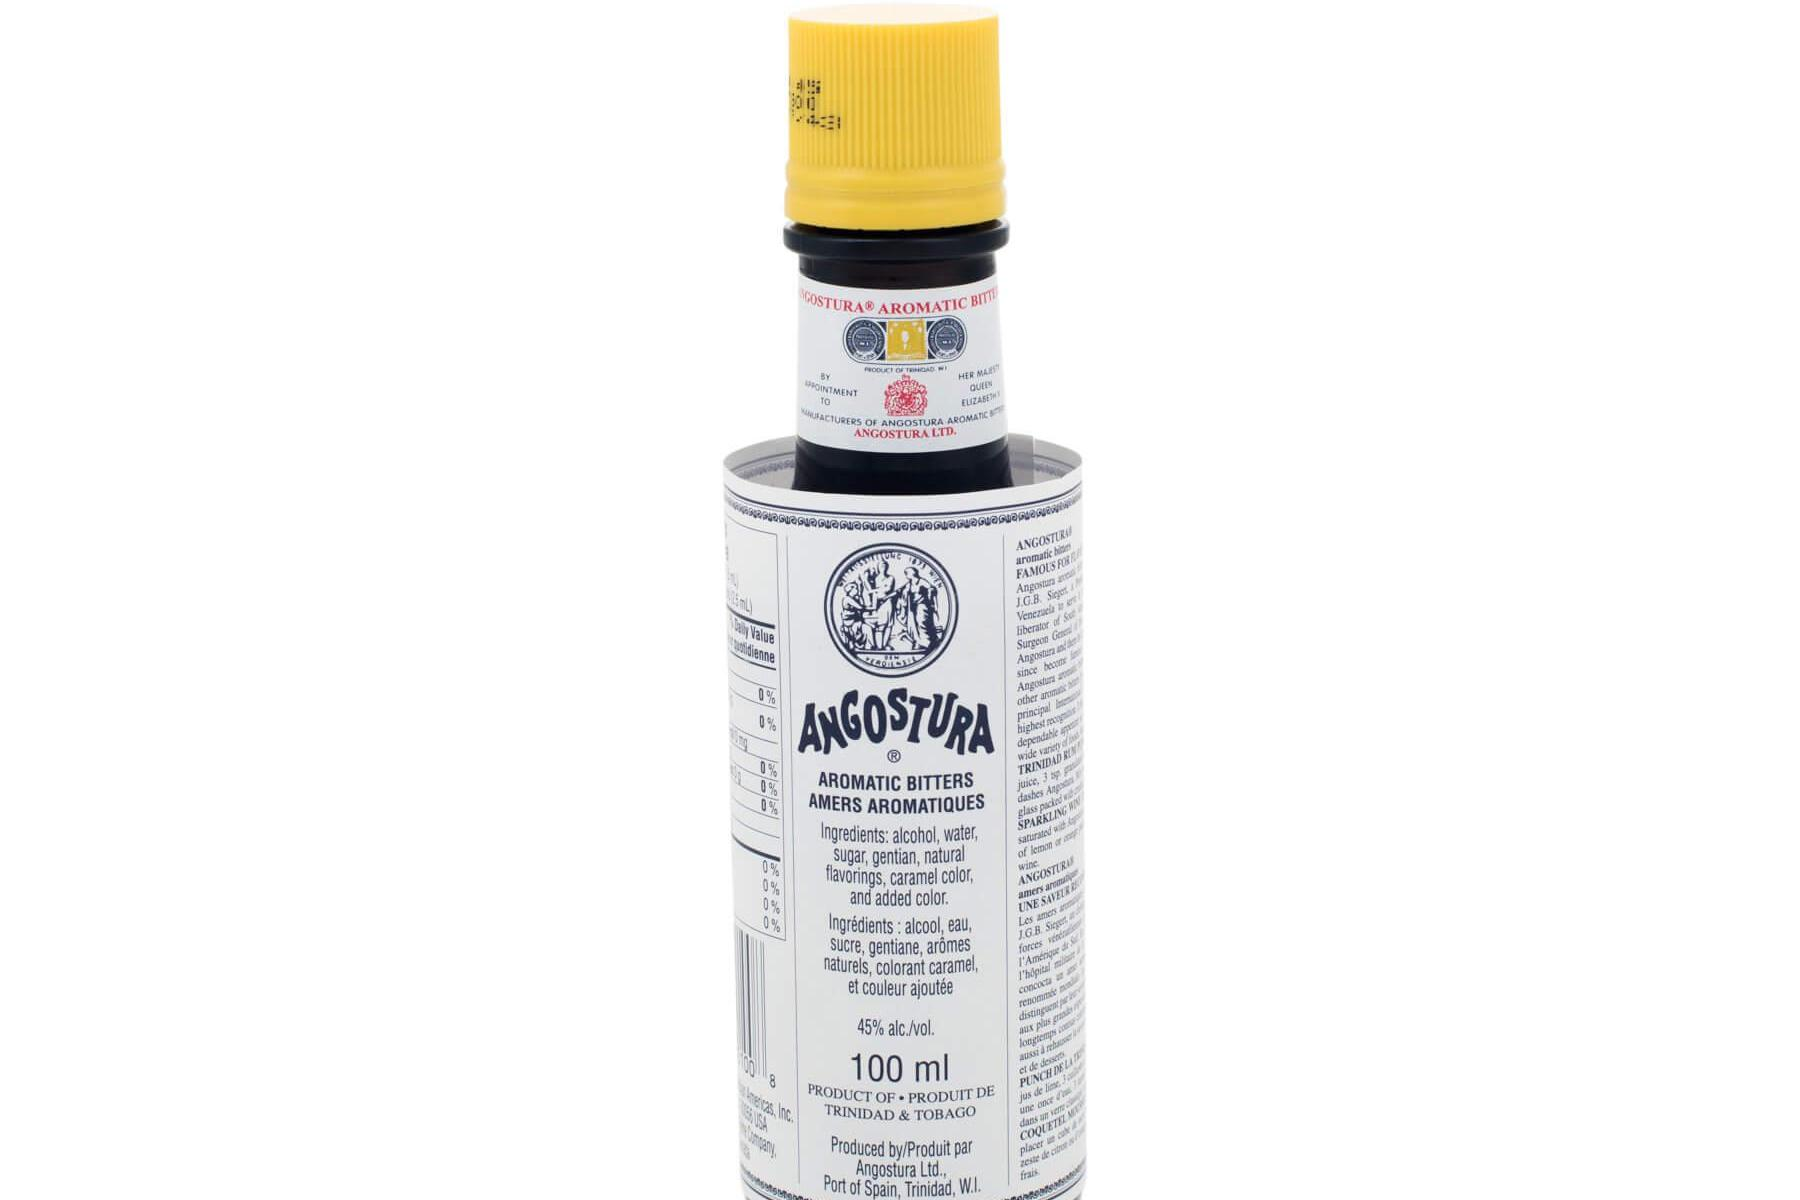 Angostura Aromatic Bitters (100 ml)